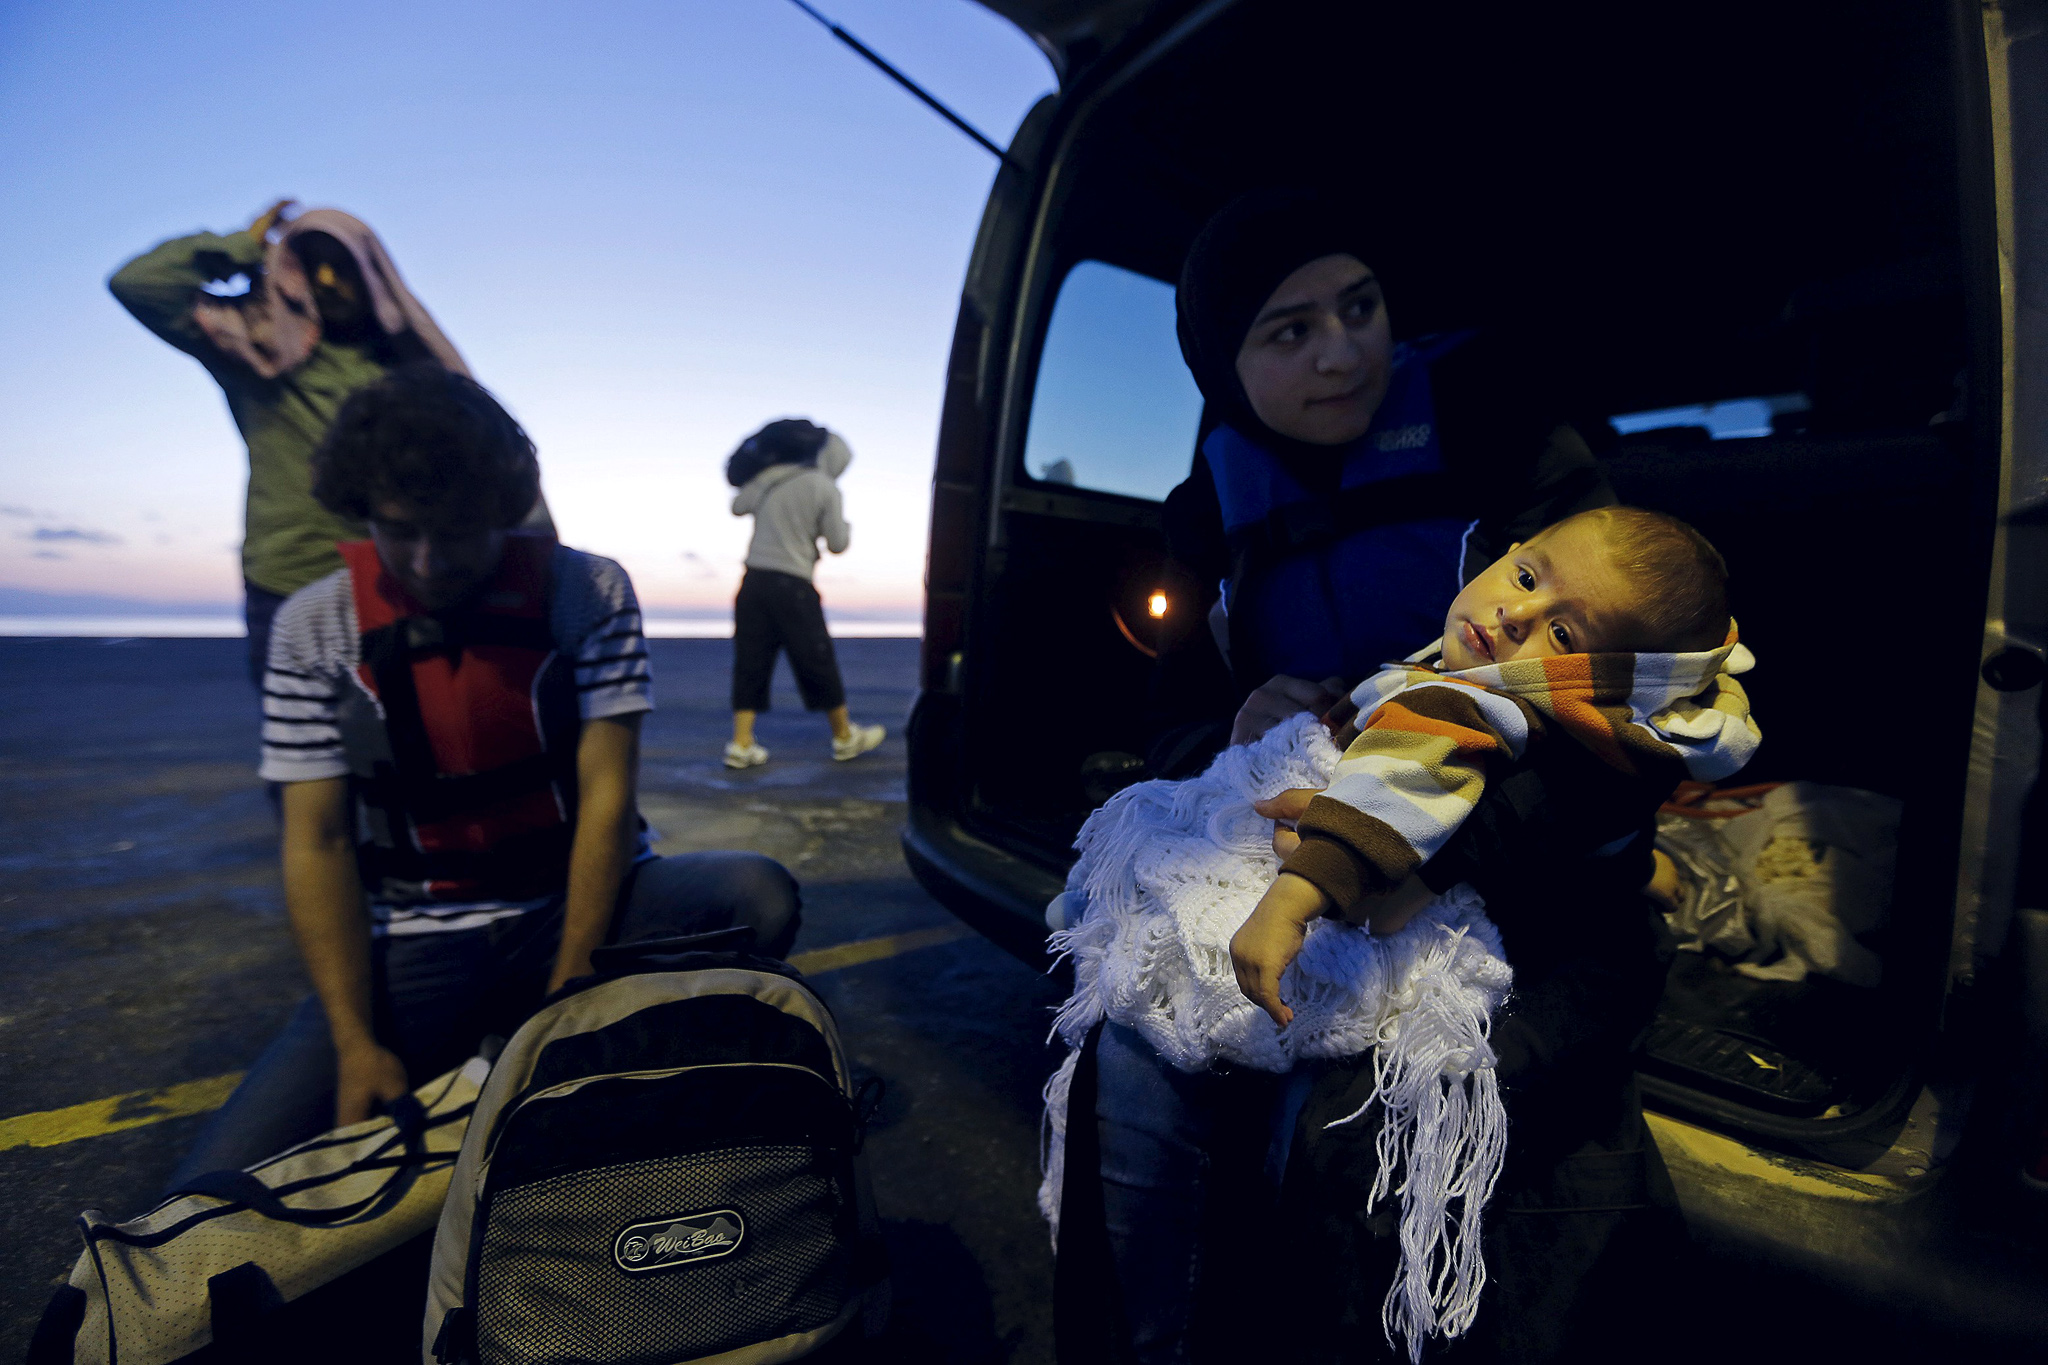 Syrian refugees are seen on Kos following an attempt to cross part of the Aegean Sea from Turkey to Greece...REFILE CORRECTIN GRAMMAR Seven-month-old Syrian refugee Jaffe is held by her mother Nada in a Greek coast guard van next to her father Ahmed (L), after they were rescued, on the Greek island of Kos following an attempt to cross part of the Aegean Sea from Turkey to Greece early May 26, 2015. Hundreds of mainly Syrian and Afghan immigrants on Tuesday landed on the Greek island of Kos in the south-eastern Aegean Sea. REUTERS/Yannis Behrakis